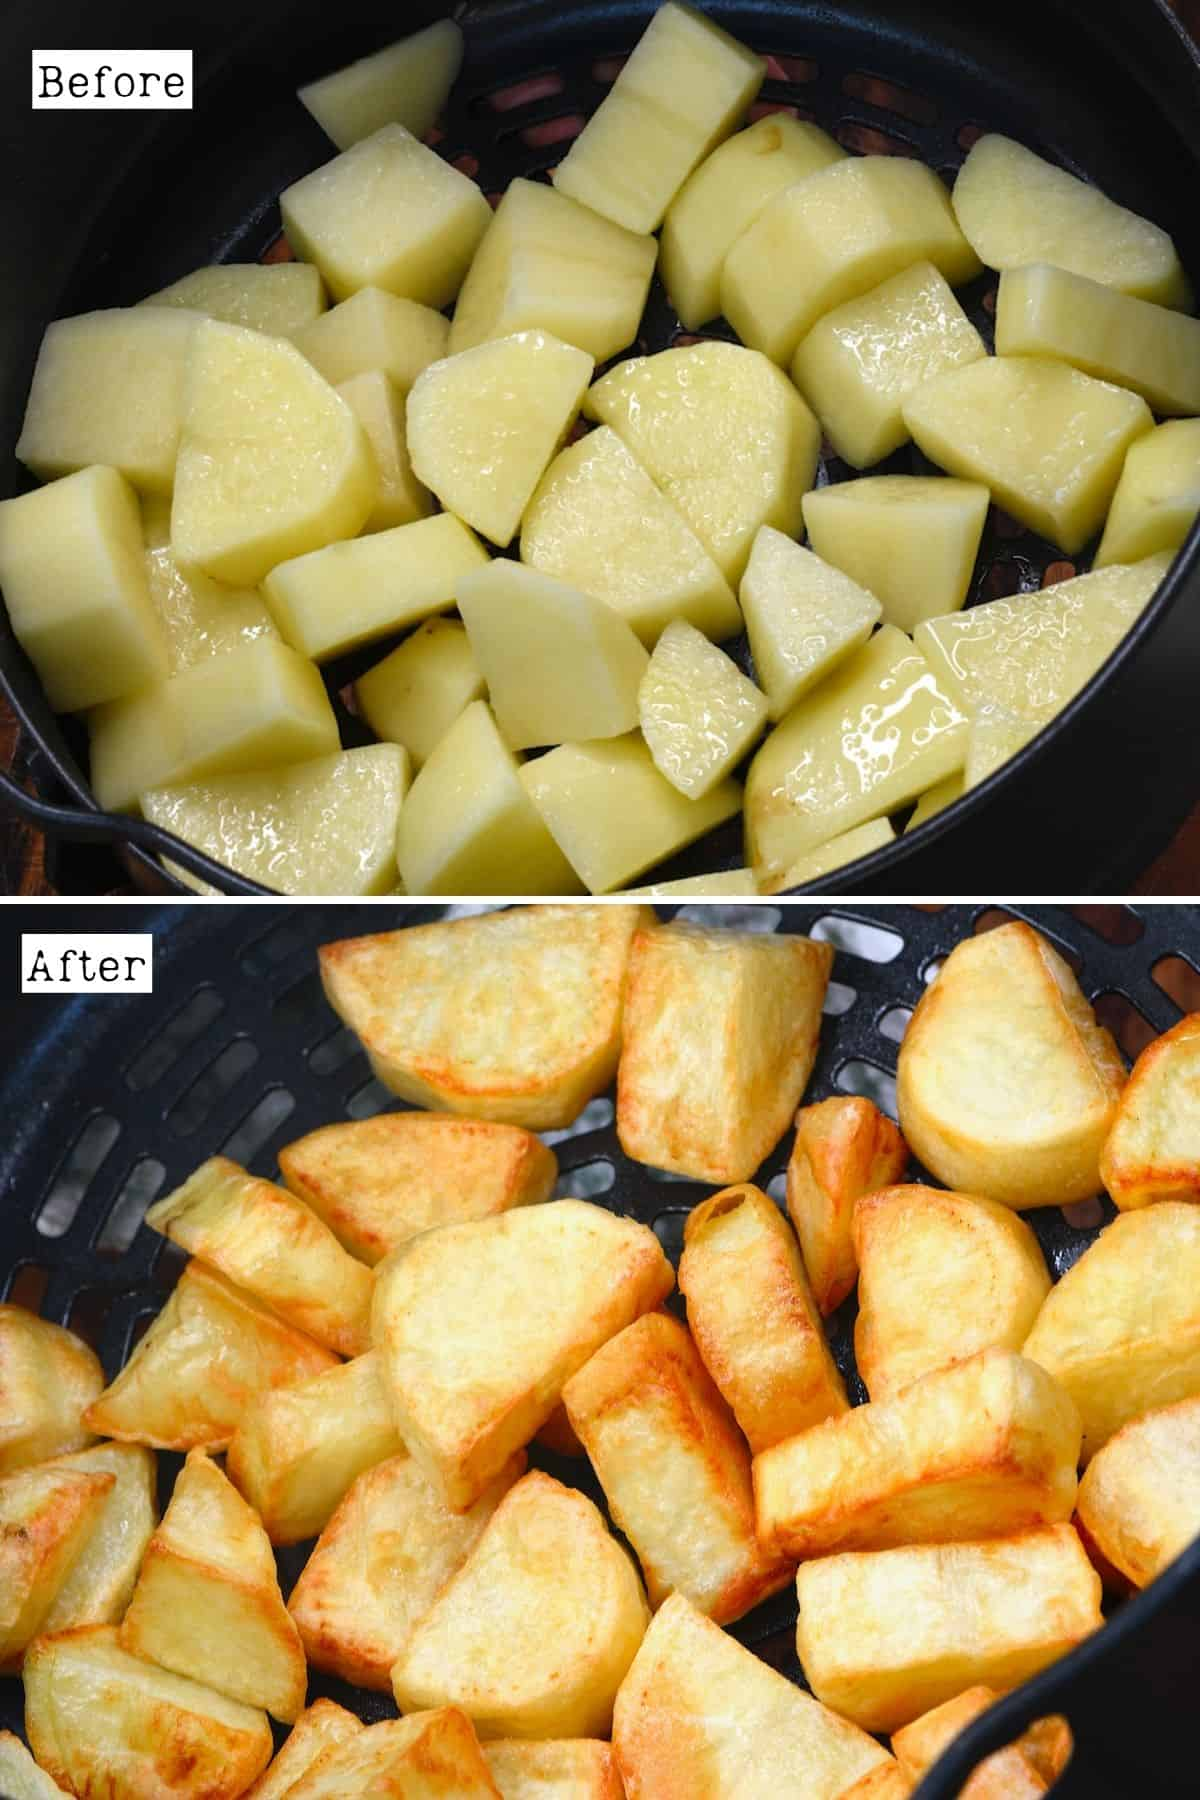 Before and after baking potatoes